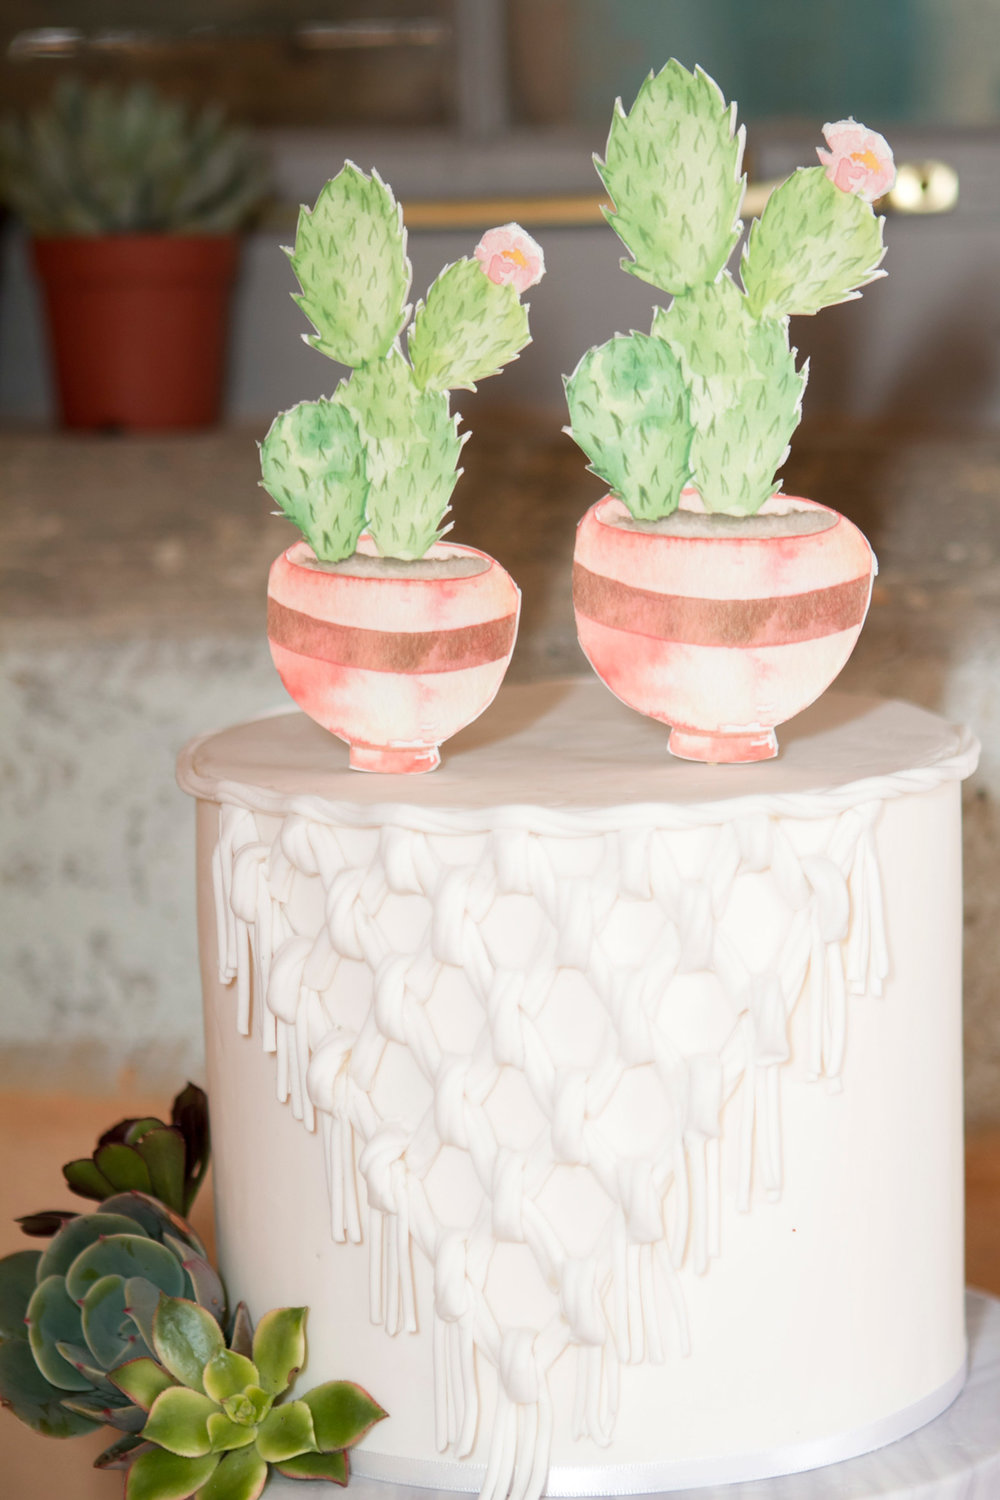 This cake design by Taylor Made Gourmet features a subtle decorative macrame design in fondant and is complemented by the cake topper design based on the watercolour illustration by ELK Prints.